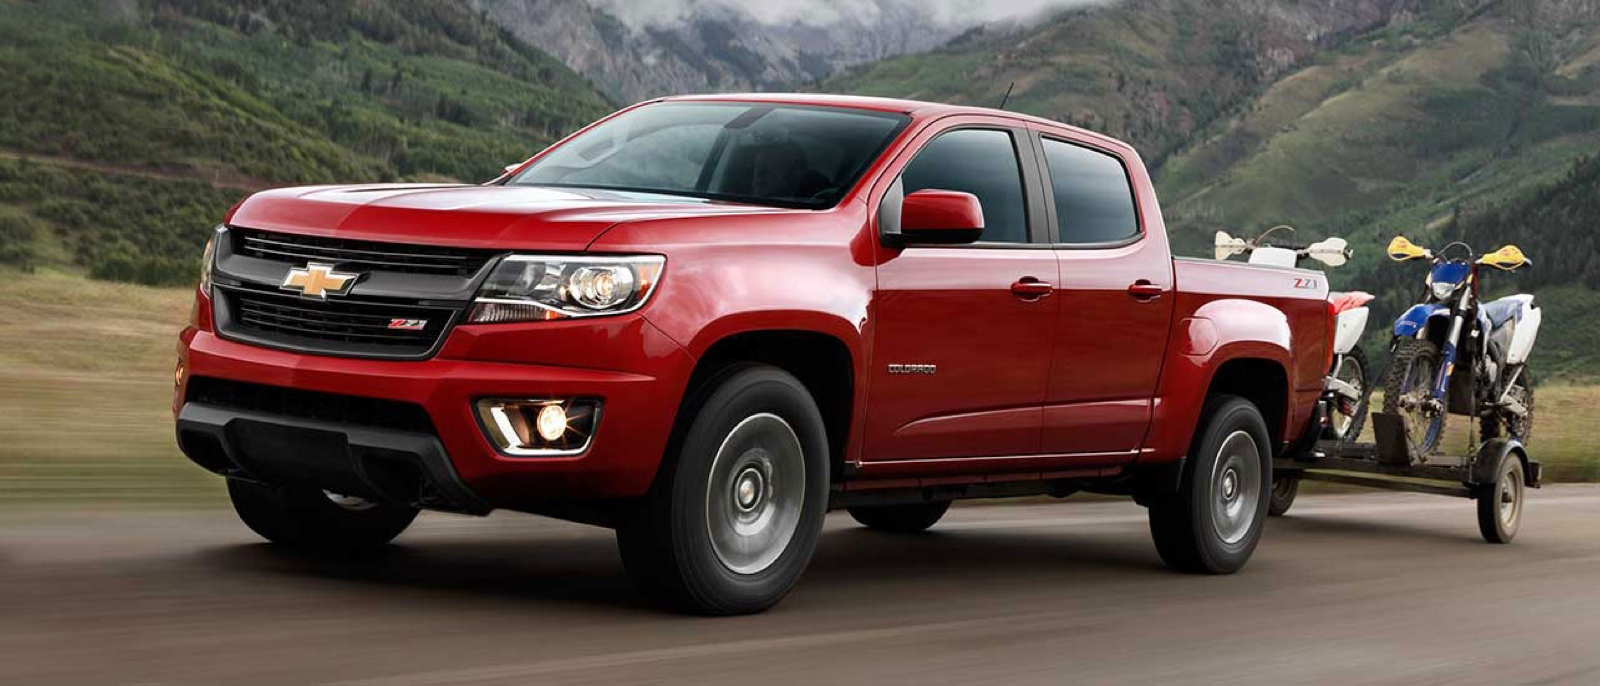 2015 Chevy Colorado